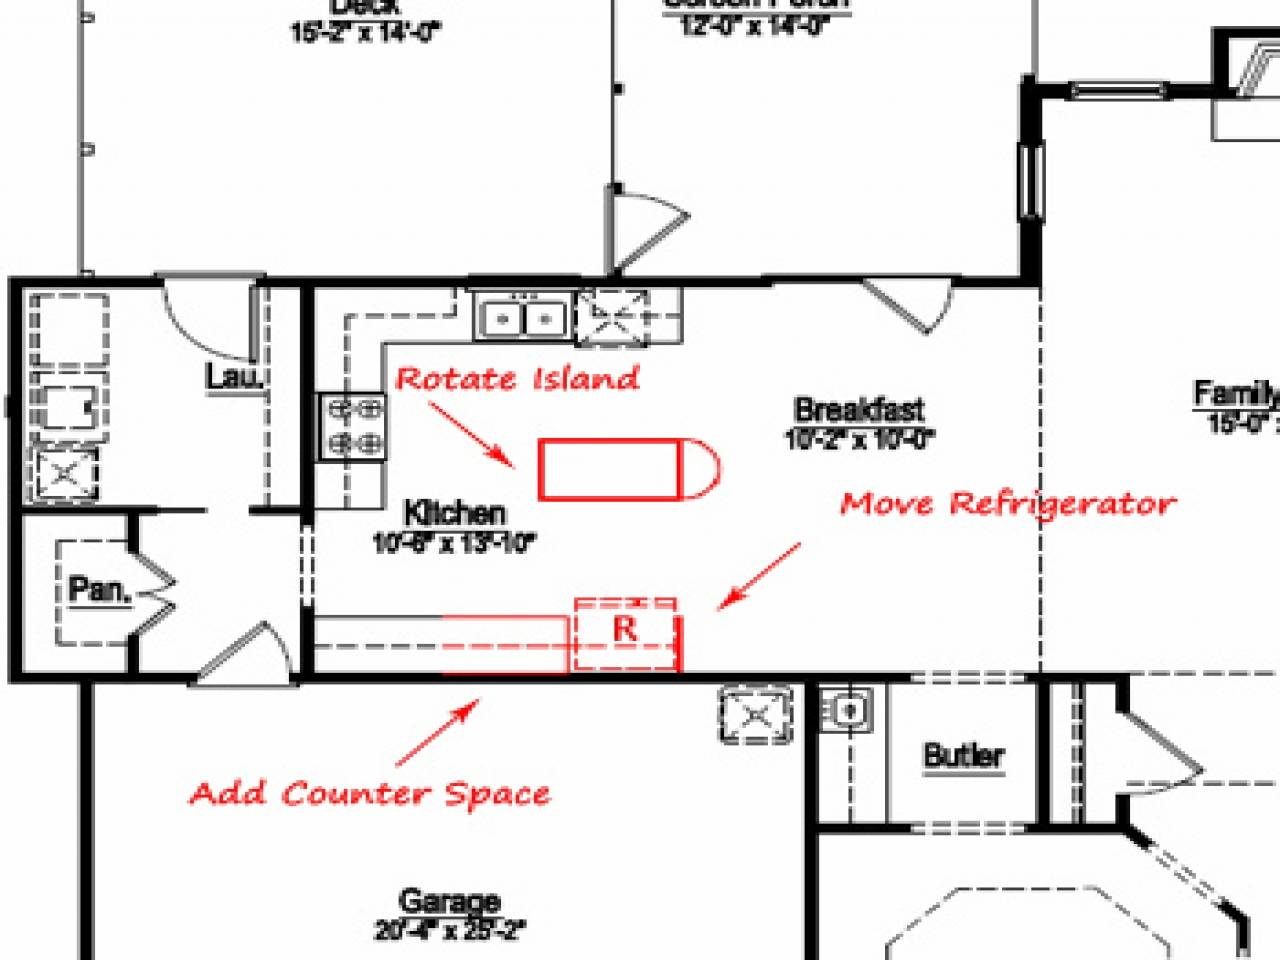 28 the mother in law cottage is 16 800 mother in law the mother in law cottage is 16 800 detached mother in law suite floor plans mother